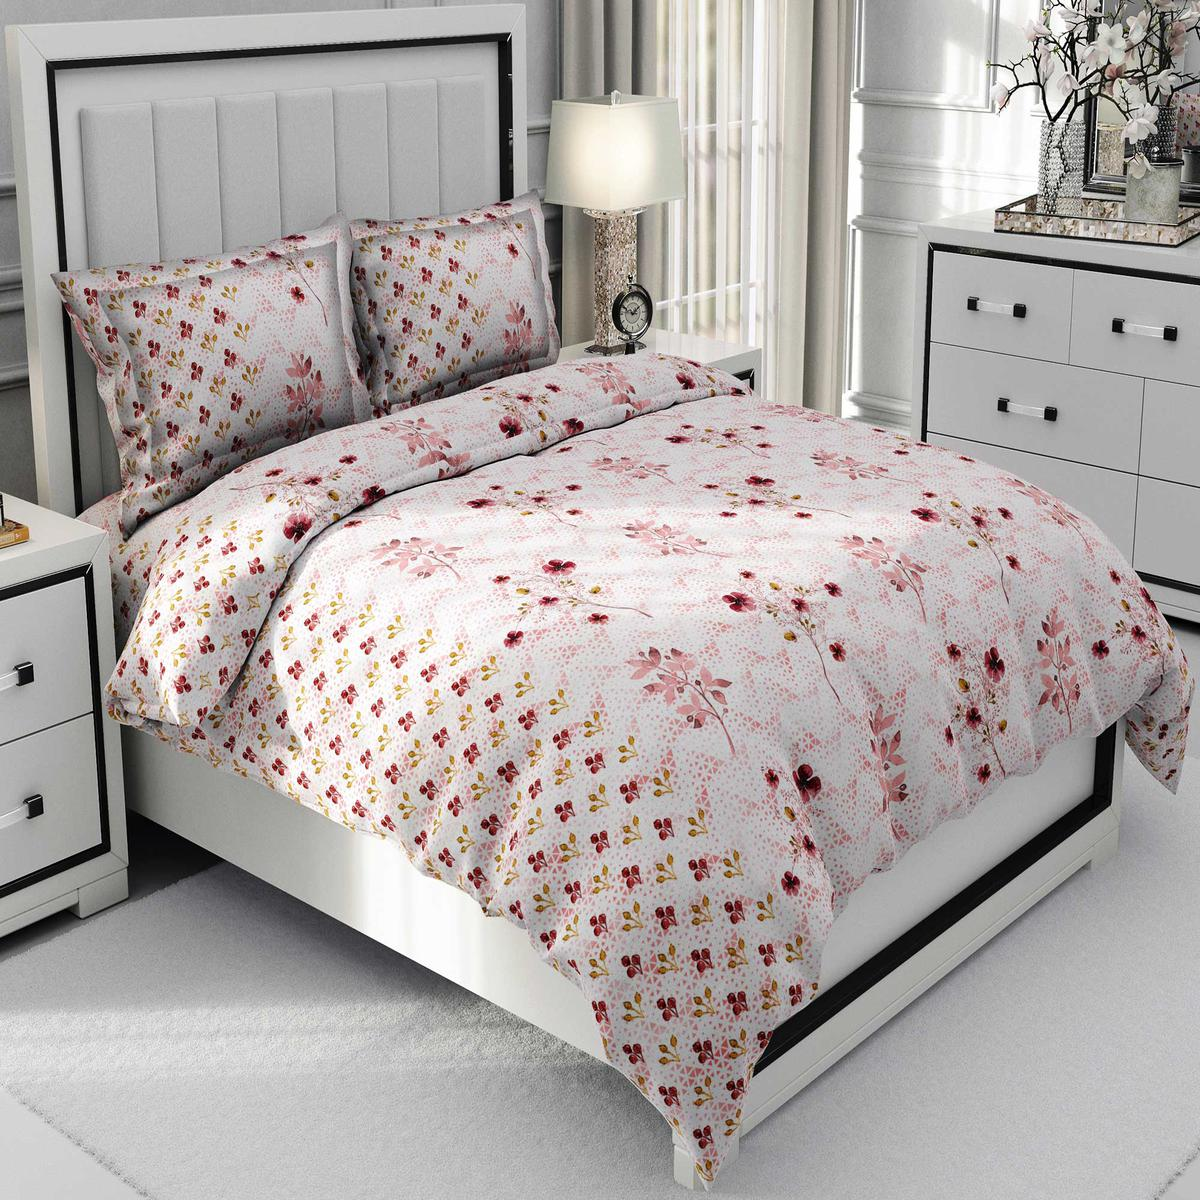 Lovely Pink Colored Floral Printed Cotton Double Bedsheet With Pillow Cover